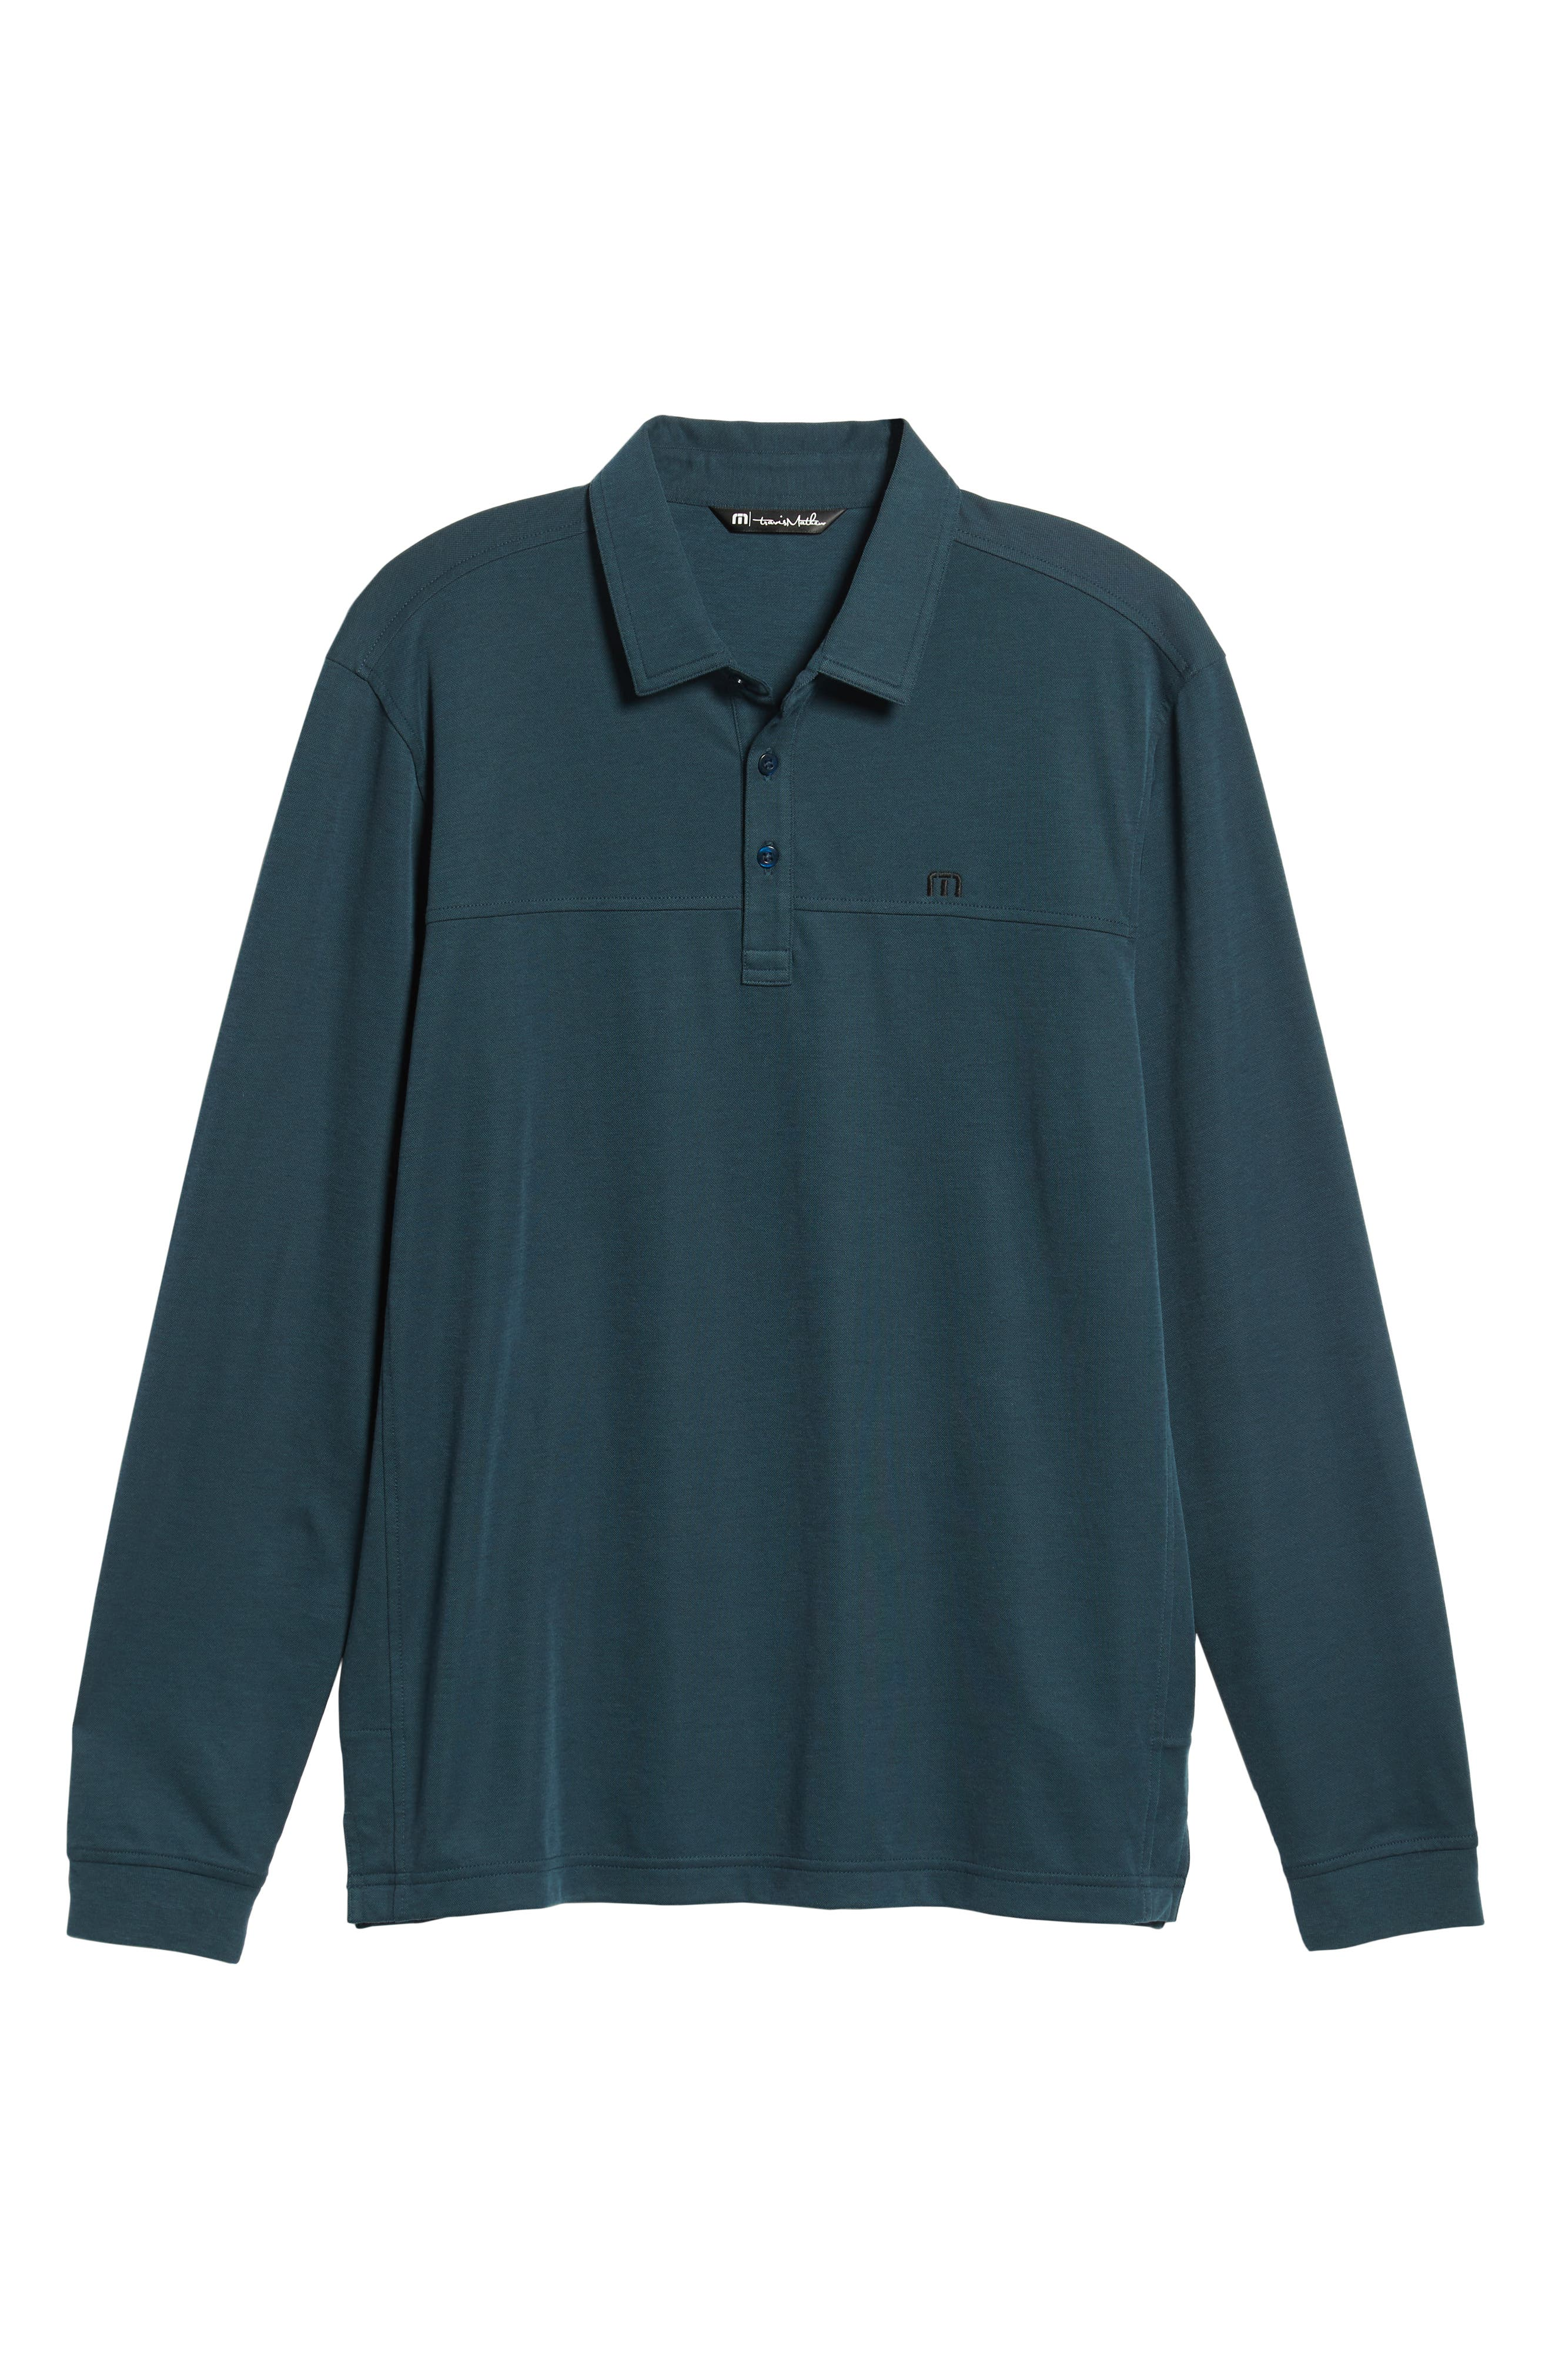 Wojo Piqué Polo,                             Alternate thumbnail 6, color,                             BLUE WING TEAL/BLACK